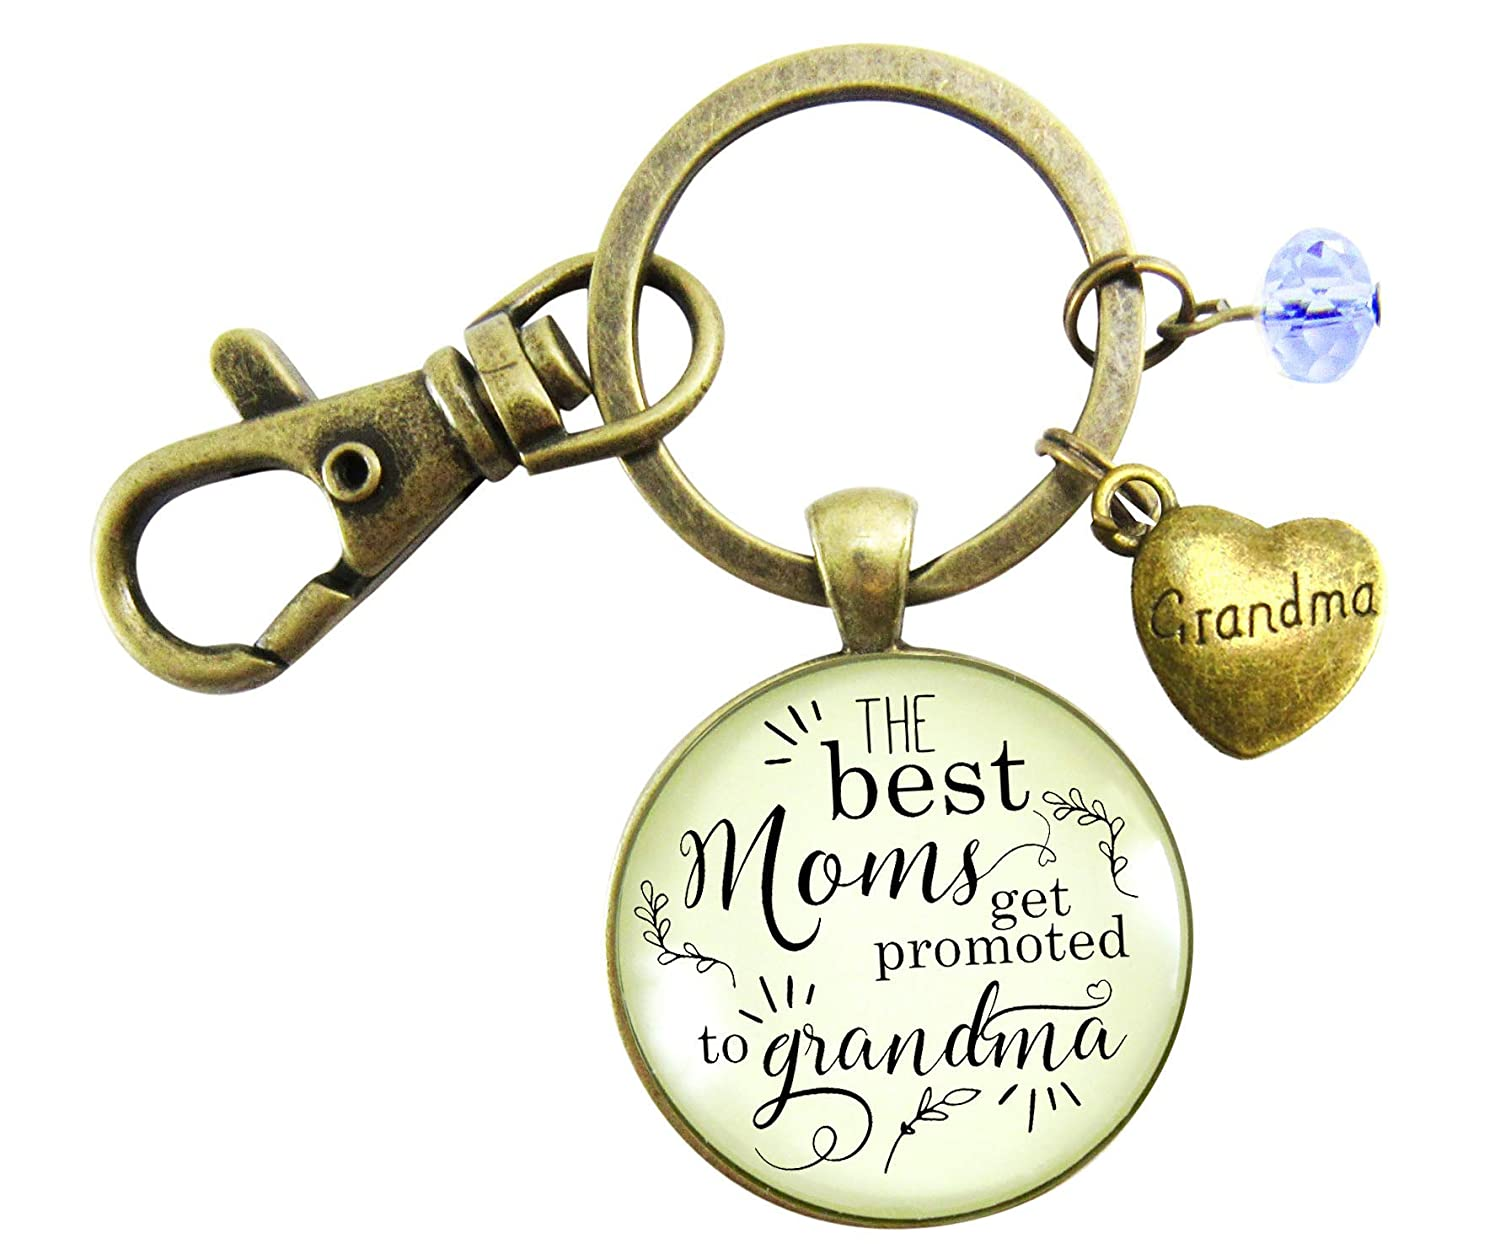 Pregnancy Announcement Grandma Gender Reveal Keychain Best Moms Gift Baby Baby Boy Jewelry Blue Heart Charm